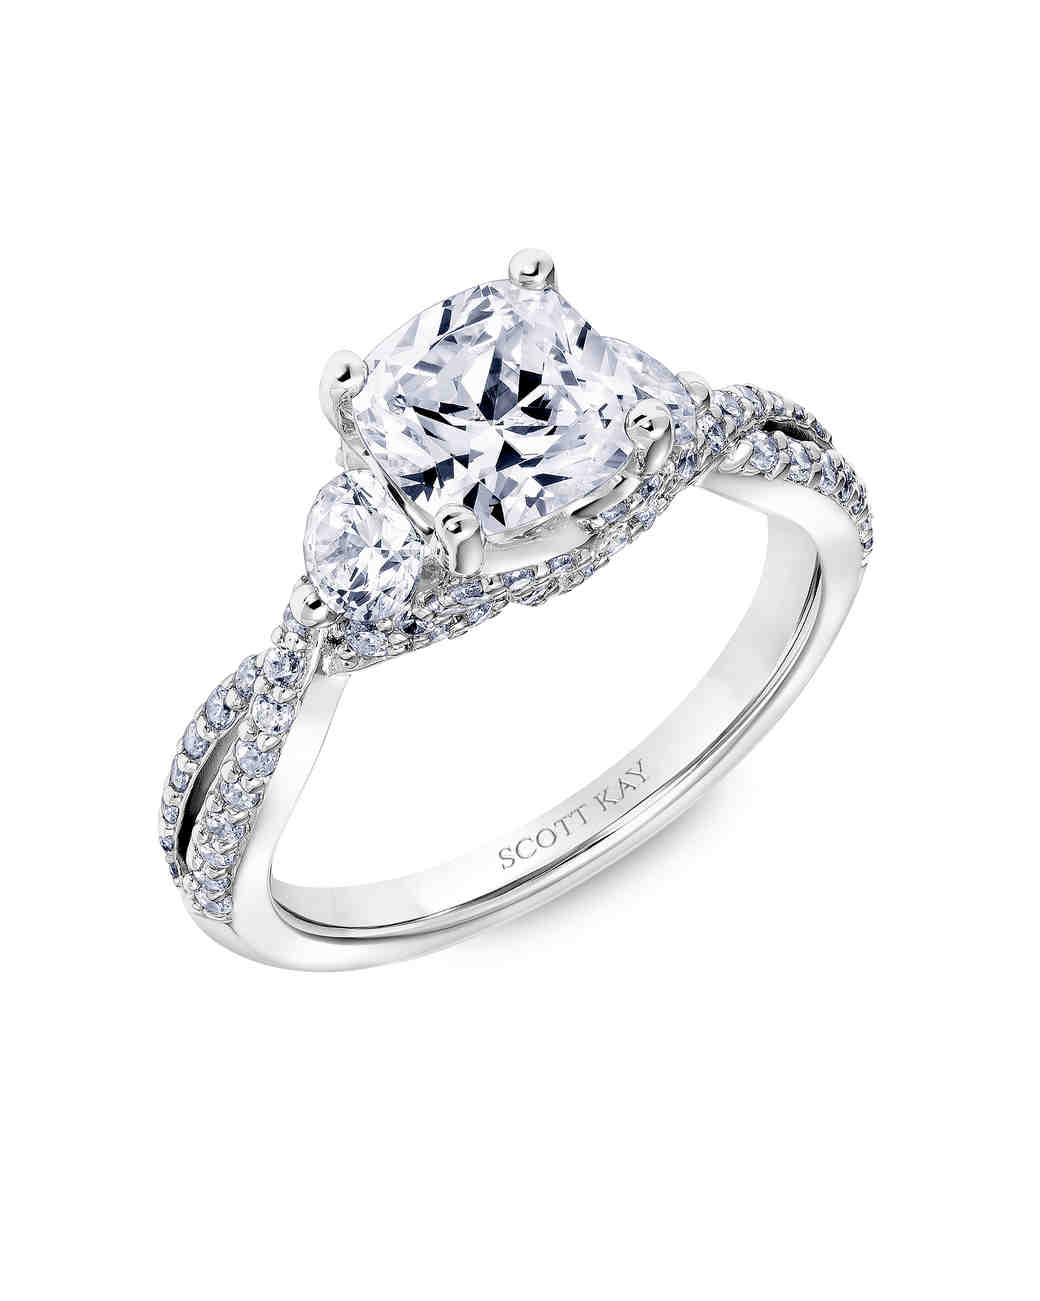 weddings diamond rings vert cusion white stewart martha ring cut in cushion engagement forevermark gold gem premier